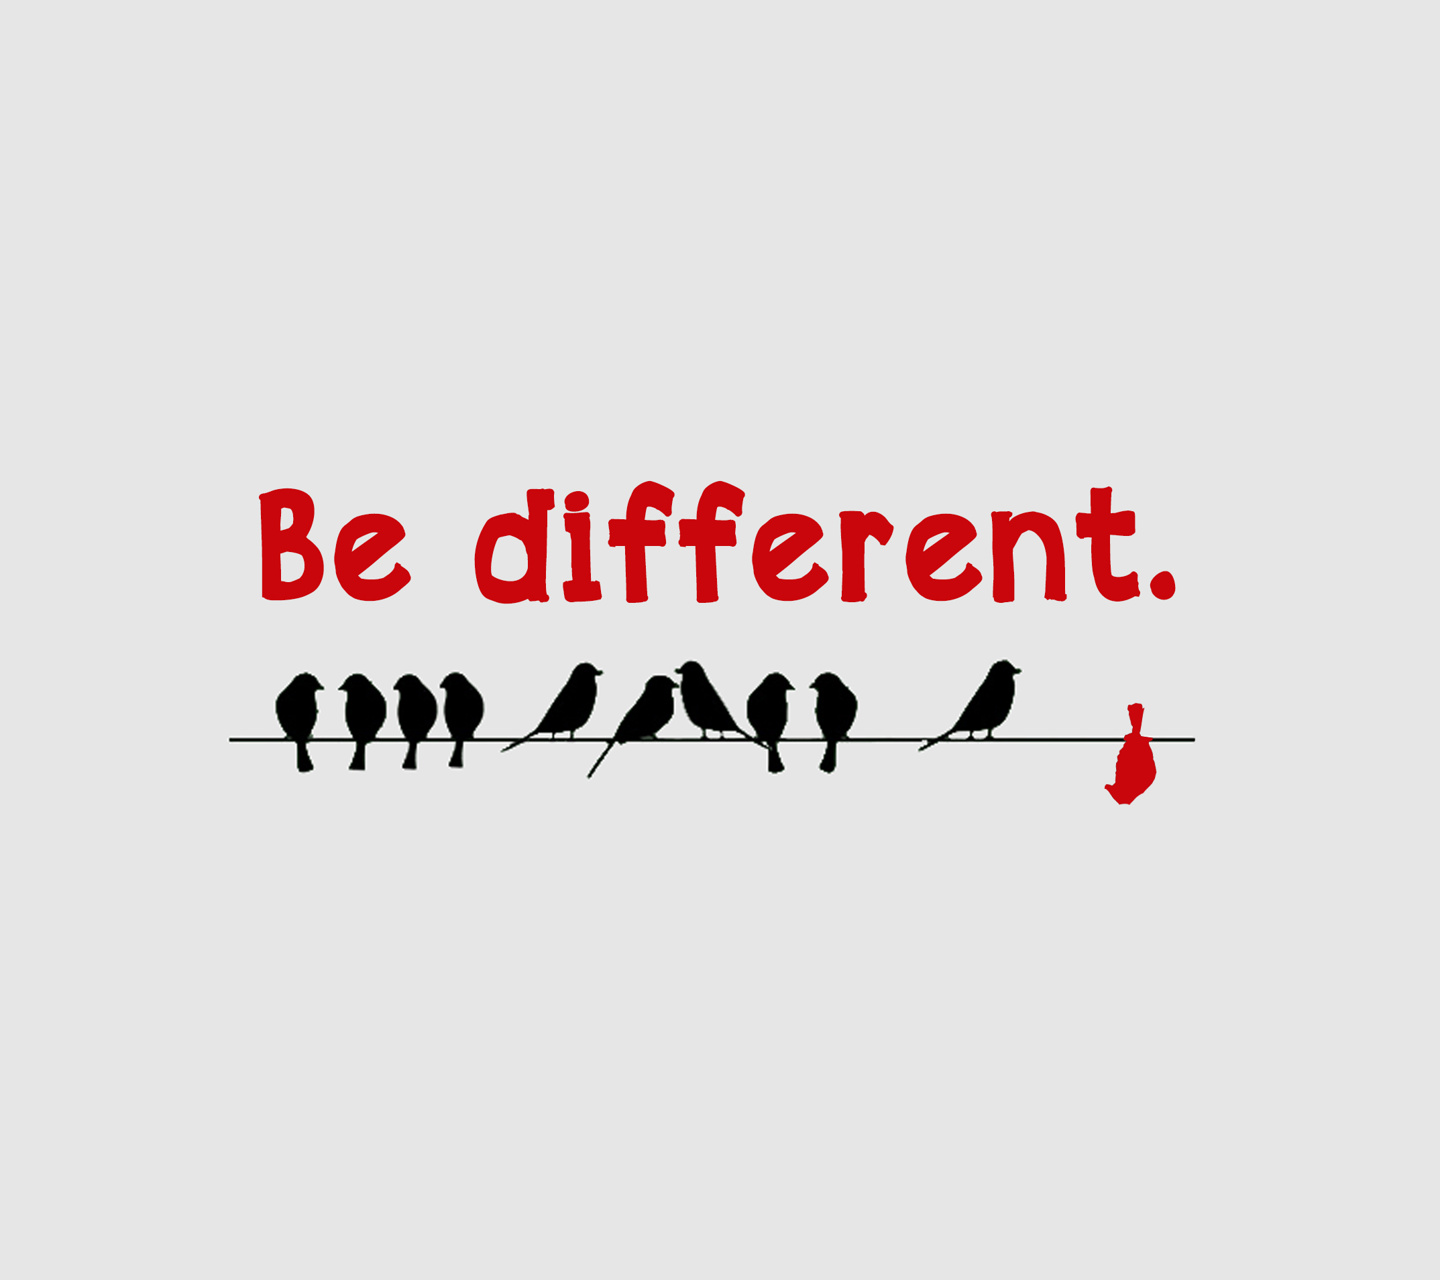 Qoute: Be Different